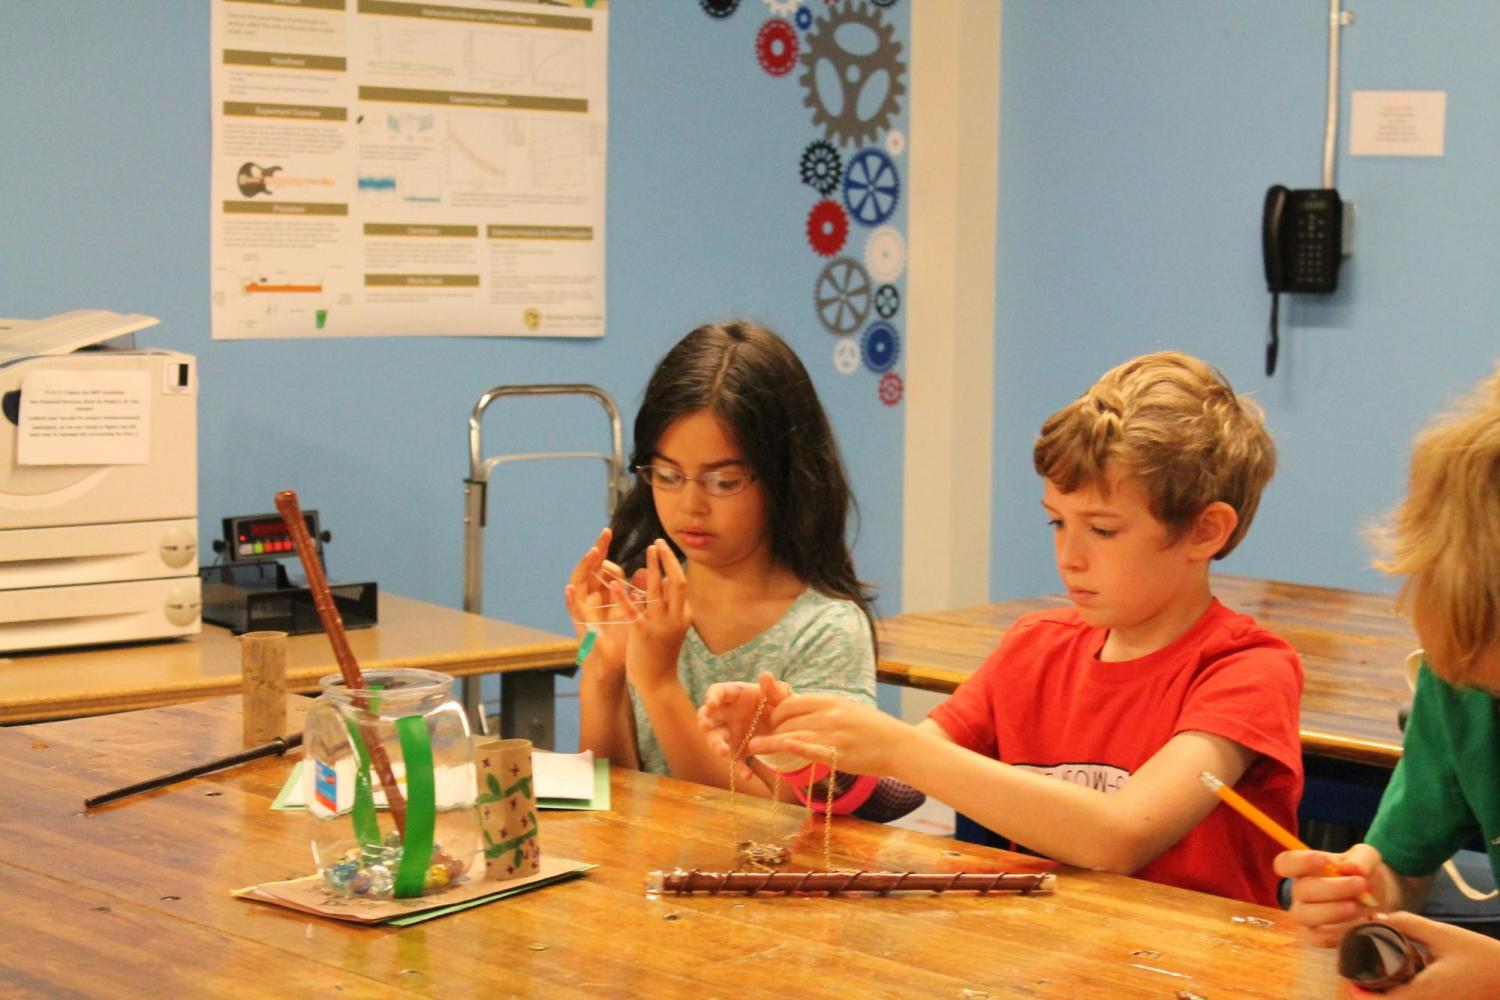 boy and girl working on crafts at table